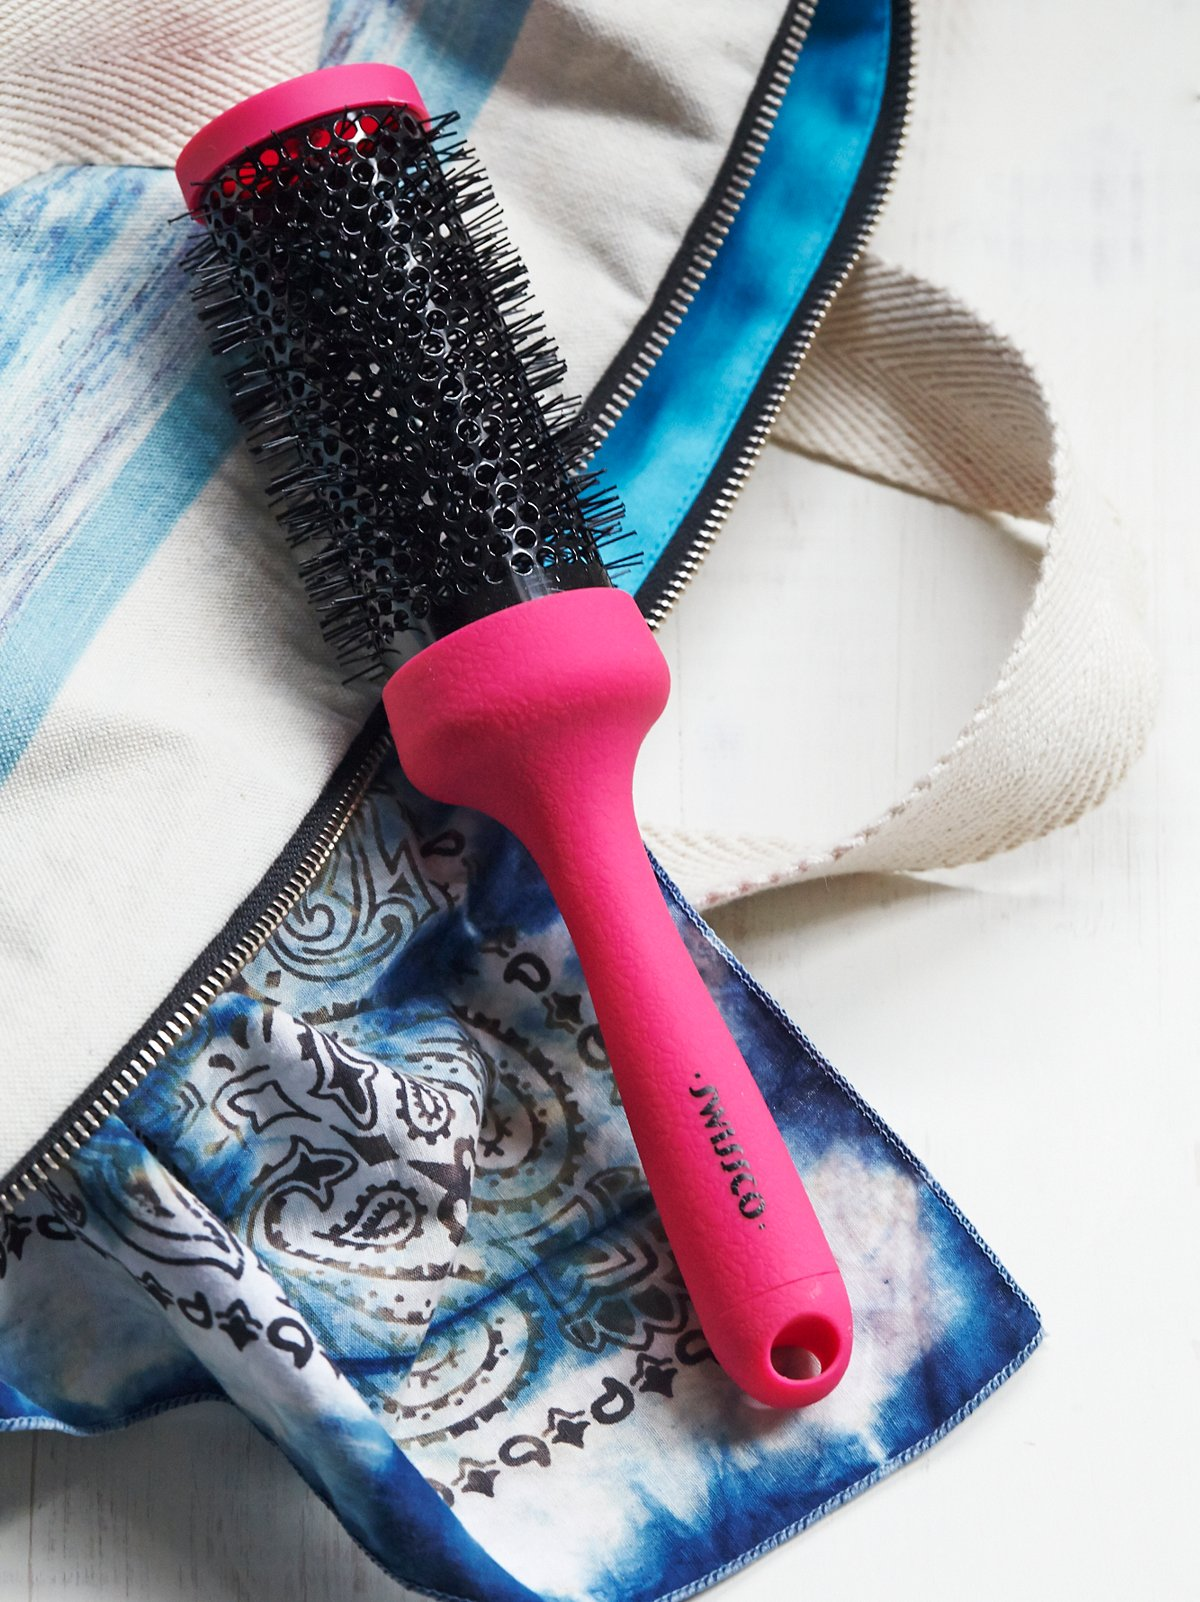 Soft Touch Round Brush